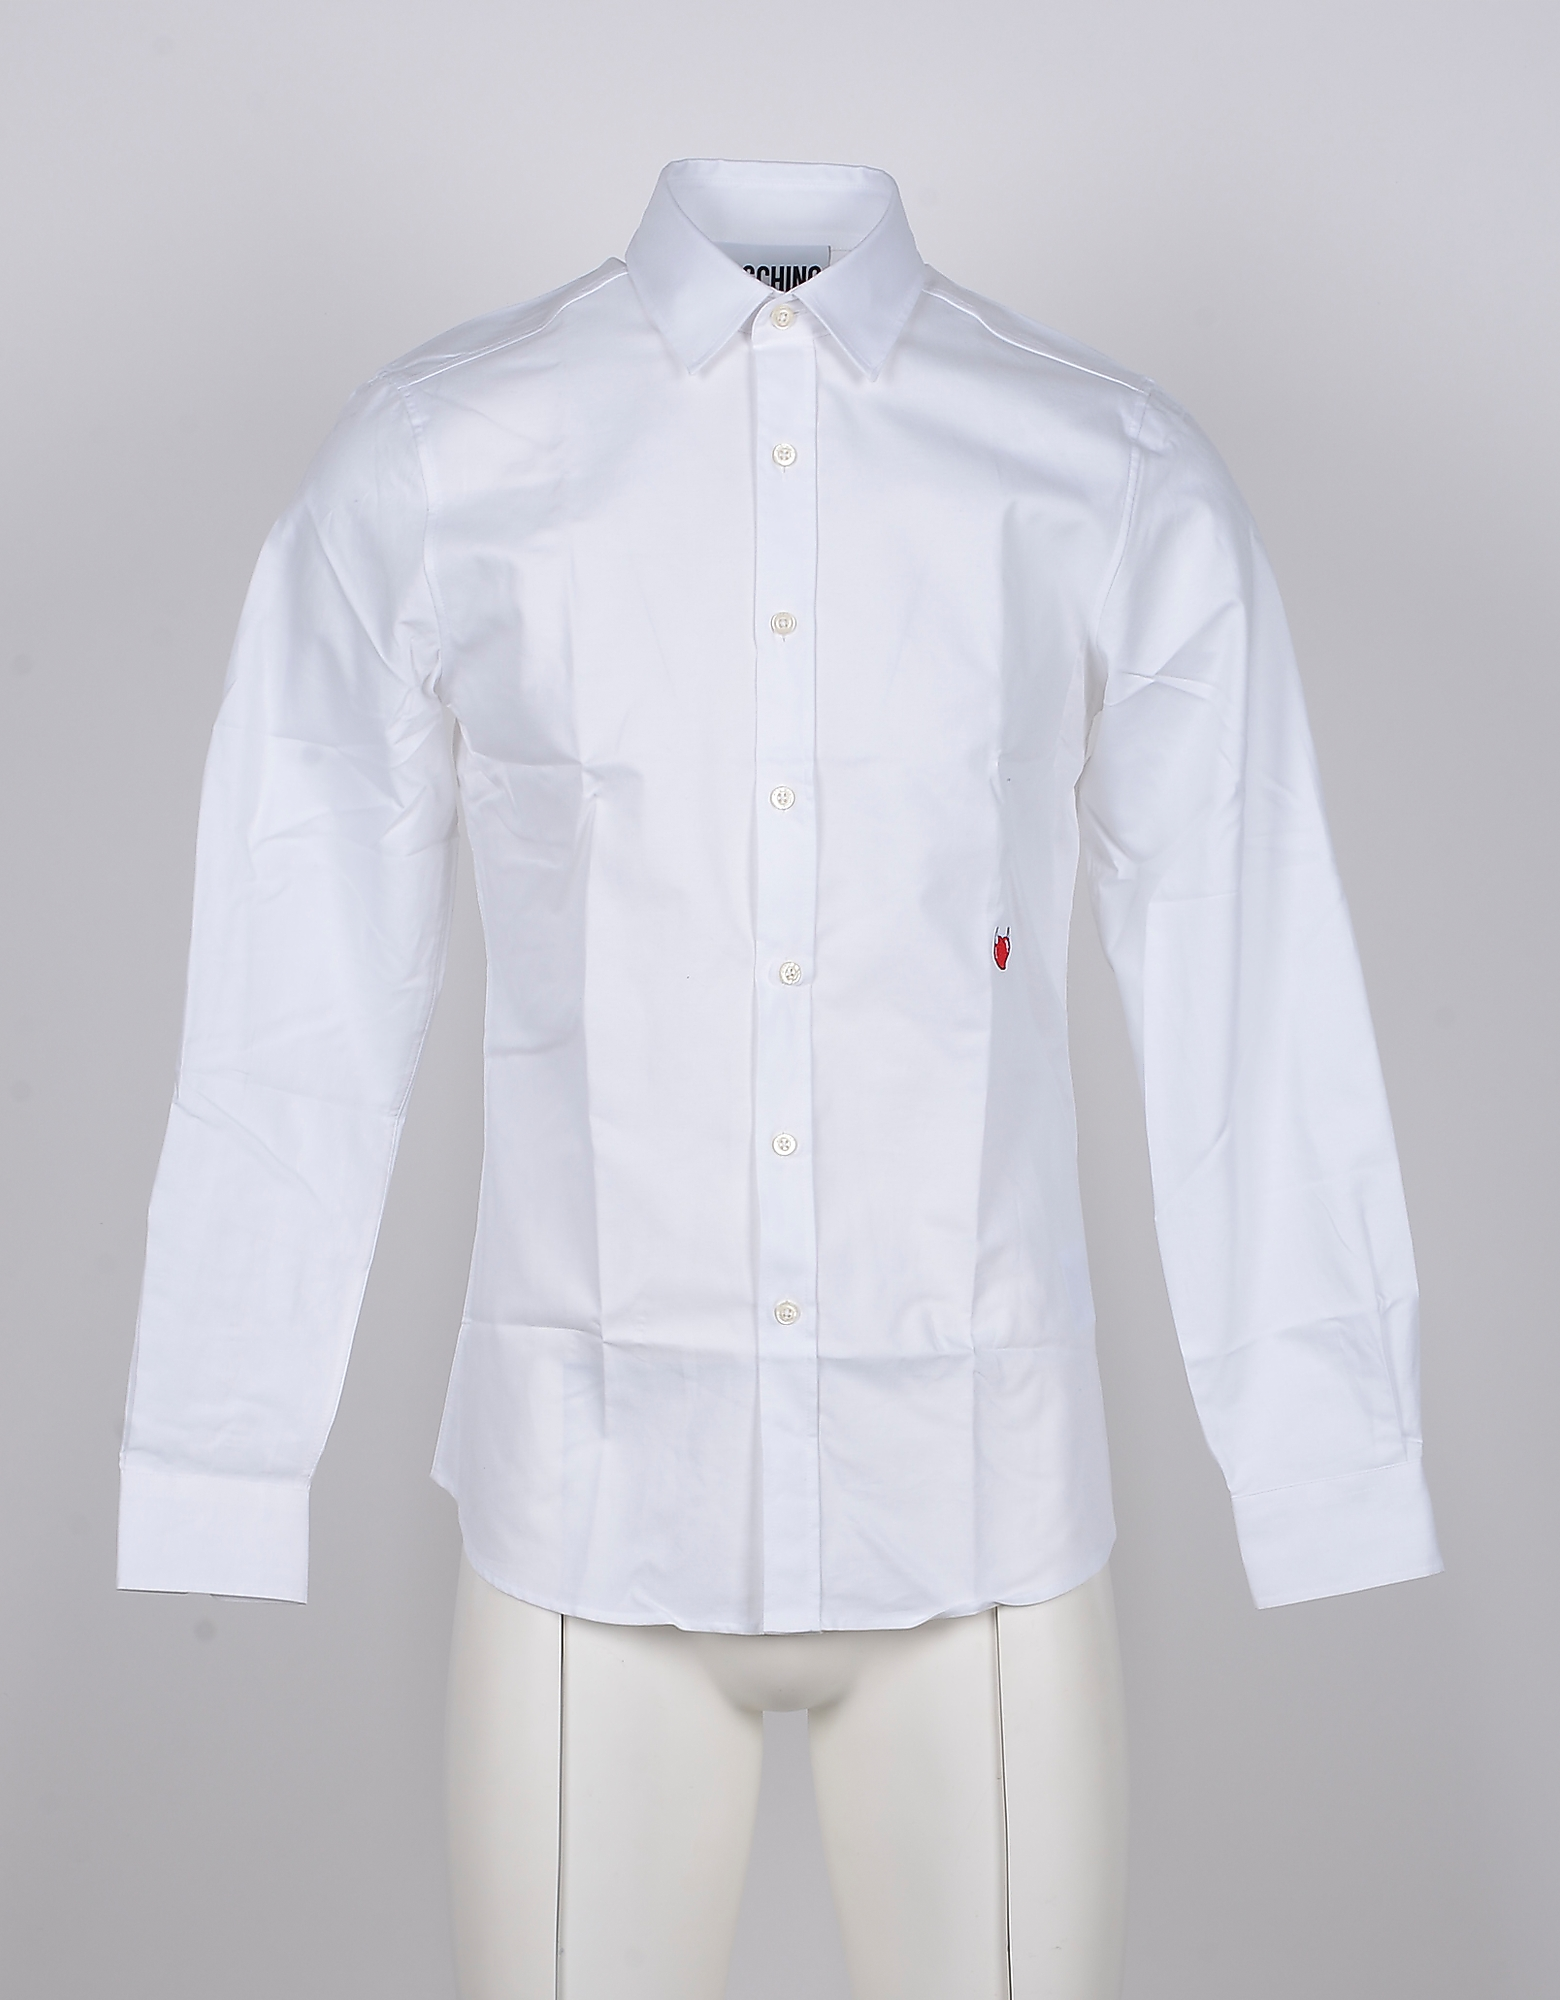 Moschino Designer Shirts, Red Heart Embroidered White Cotton Men's Dress Shirt